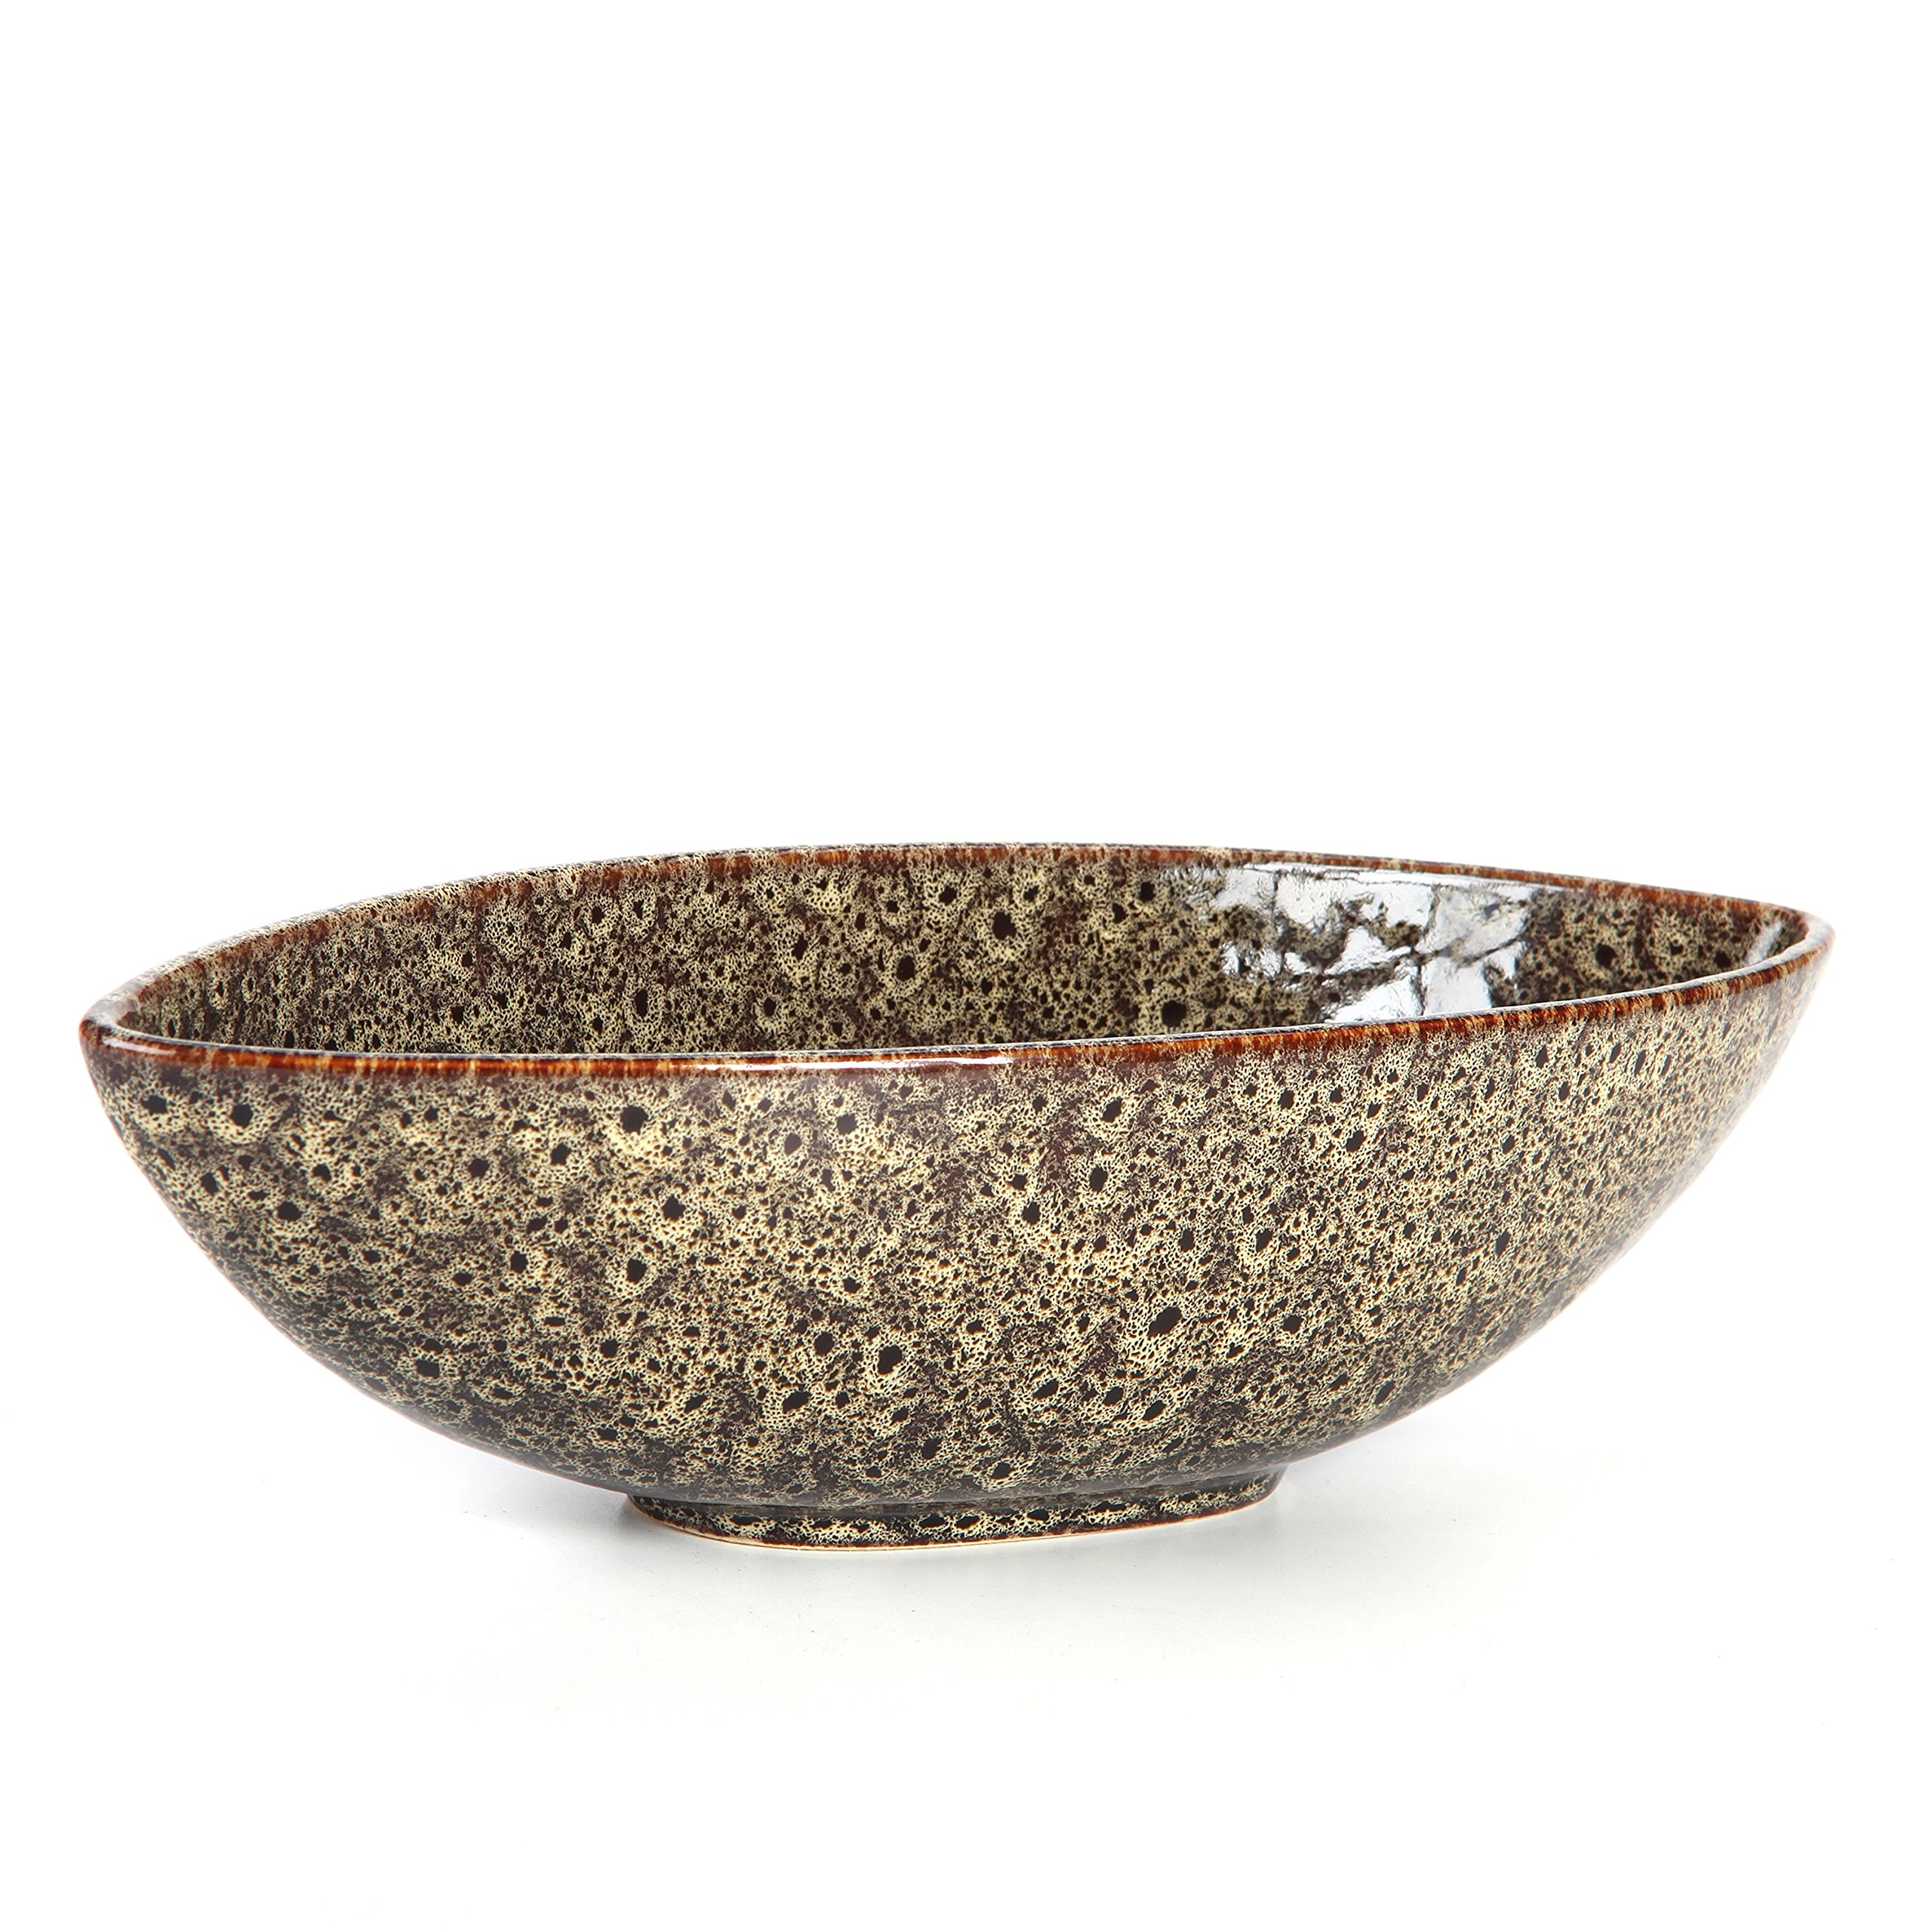 Hosley Decorative Oval Ceramic Bowl Peacock Feather Pattern 14.5 Inches Long Bowl for Orbs and Potpourri Ideal GIFT for Weddings Parties Special Occasions LED Votive Tealight Gardens P1